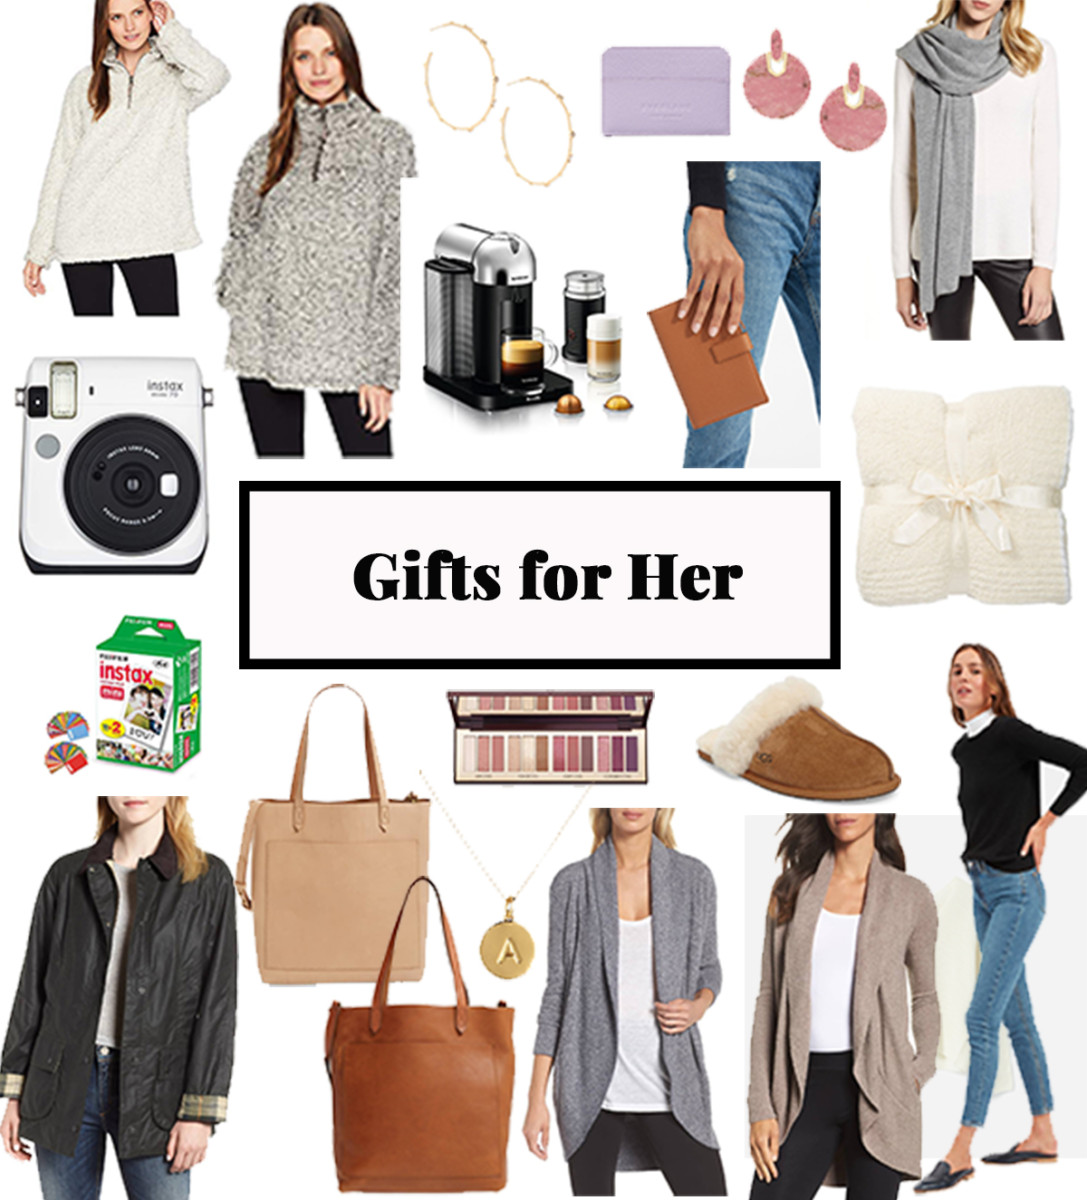 Gifts for Her   Cobalt Chronicles   Washington, DC   Fashion Blogger